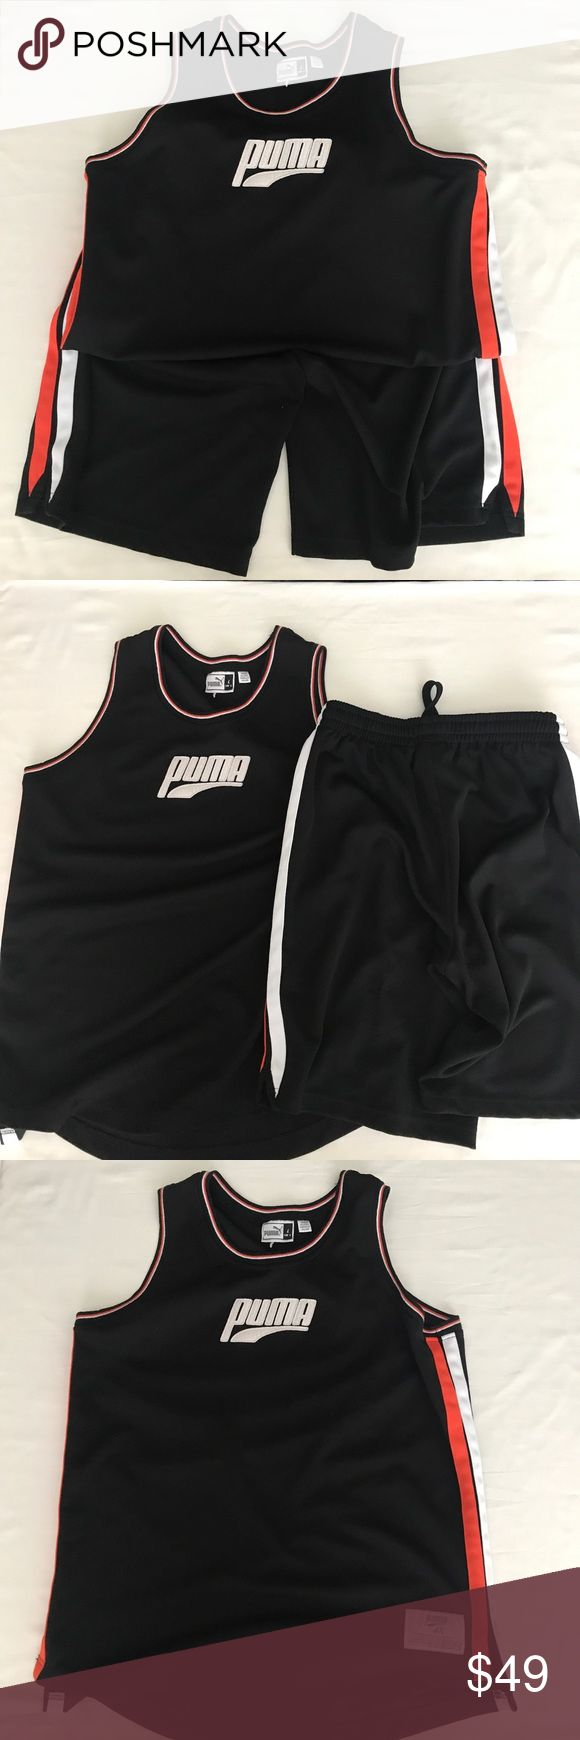 Puma tank and shorts. Great color combo. Puma tank and shorts. Great color combo.  Super quality. In nice condition.  Made of 100% polyester.  Great basketball or beach summer set you can go wrong with. Size large. Puma Shirts Tank Tops